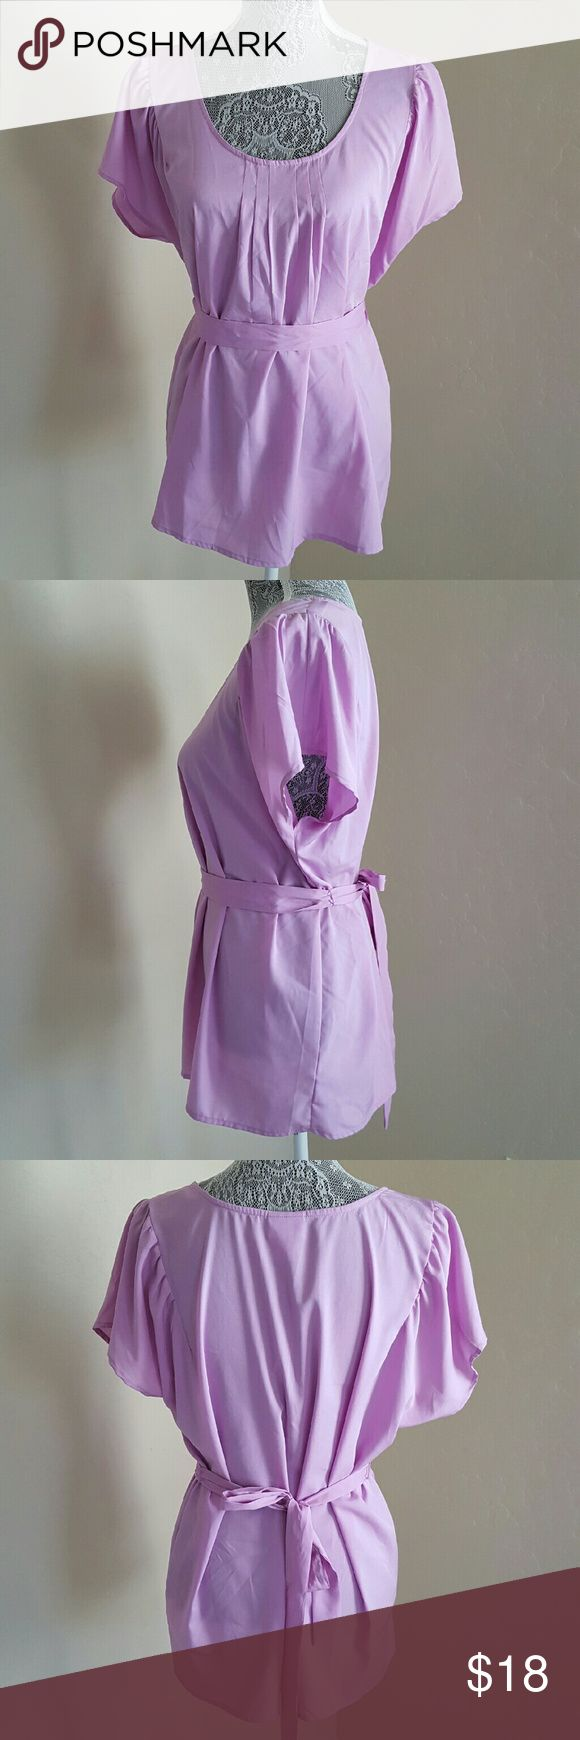 Flutter Sleeves Maternity Blouse This maternity blouse features flutter sleeves, scoop neckline, and tie back for bump adjustability. Pre-loved and in excellent condition. 100% polyester, machine washable. Color is lilac. Motherhood Maternity Tops Tees - Short Sleeve